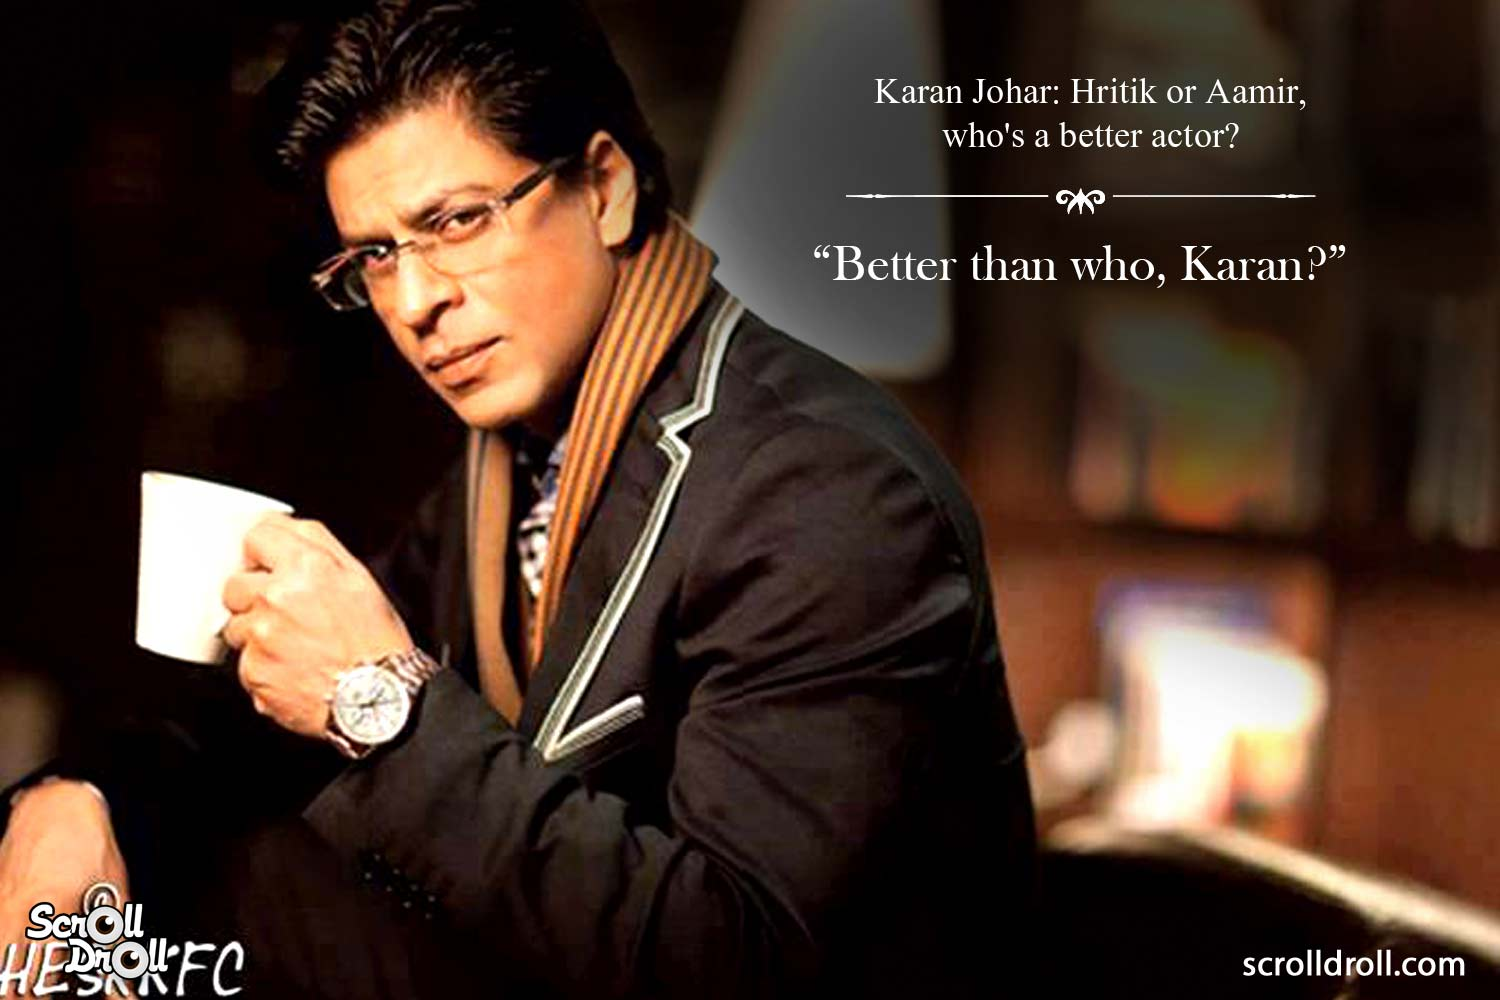 Shahrukh Khan Witty Lines (6)